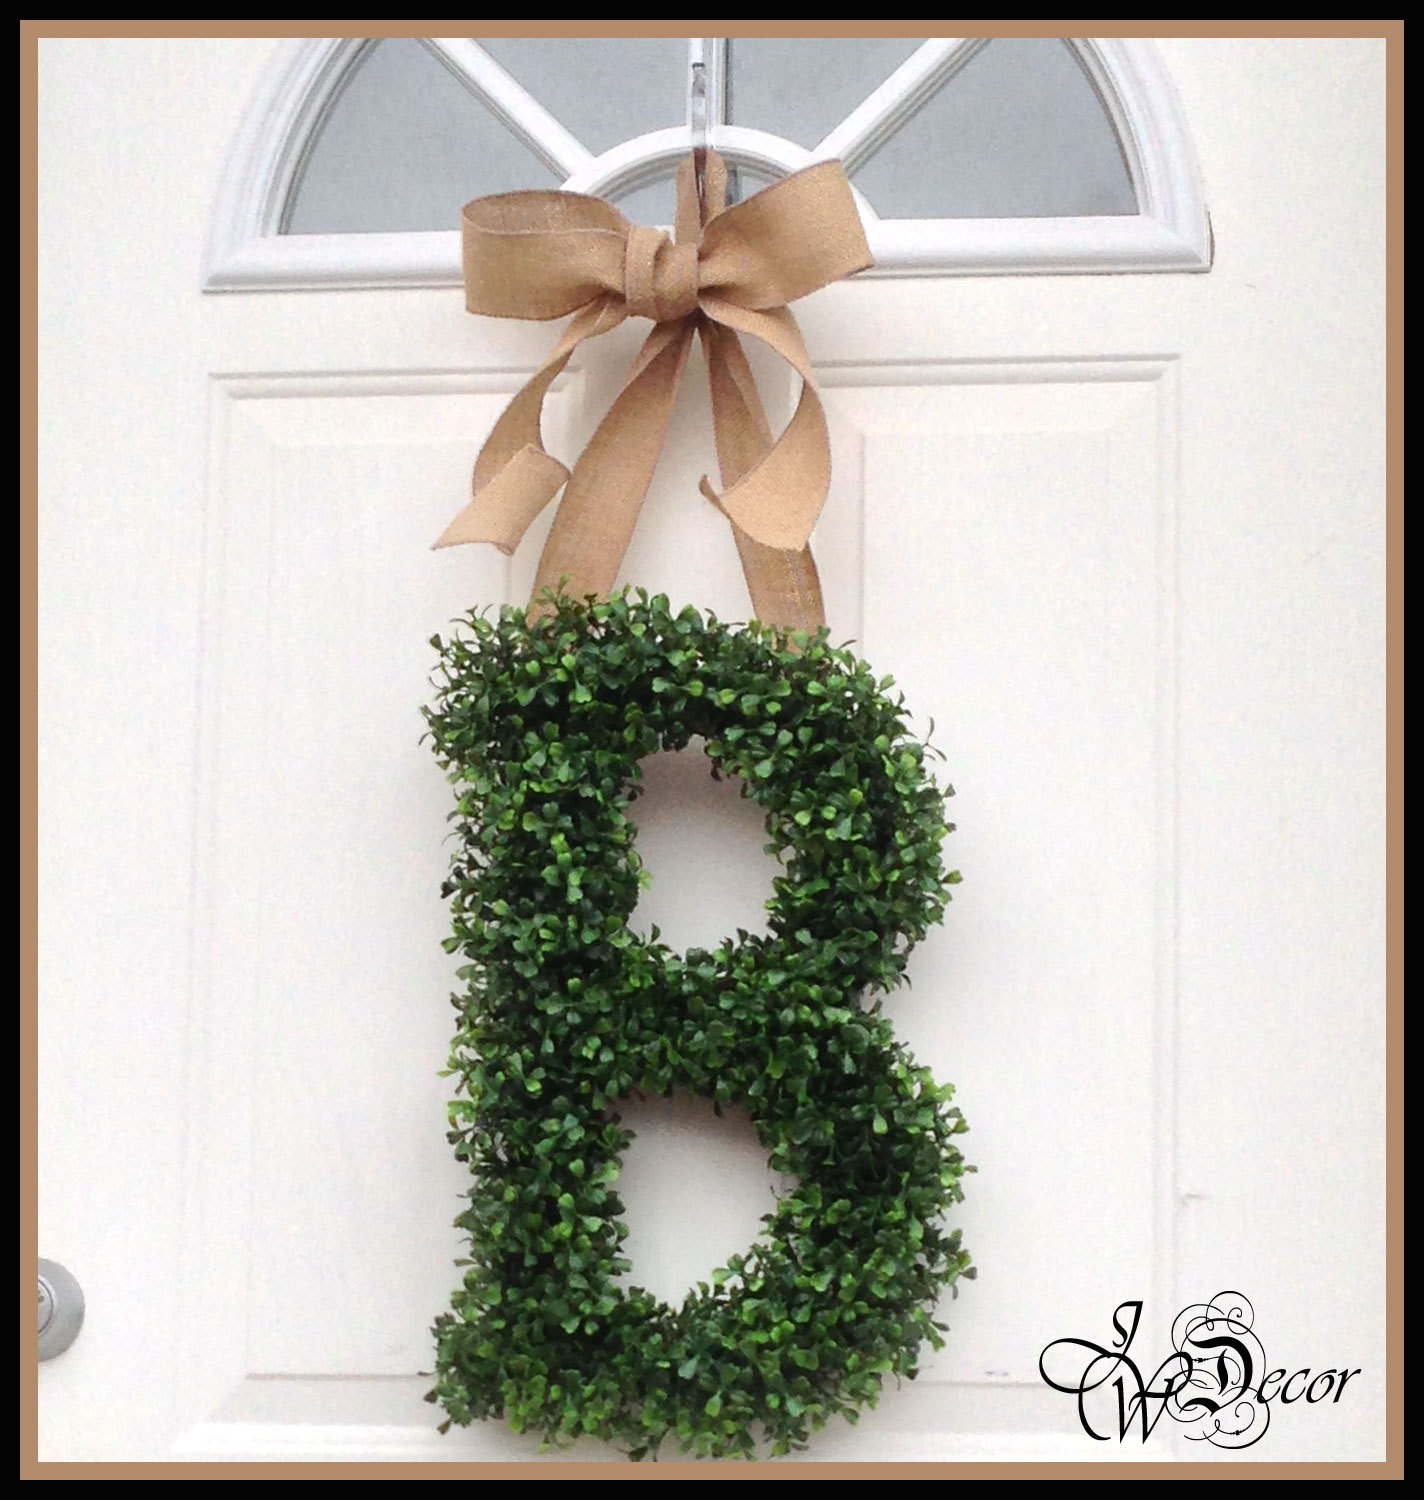 Preserved Boxwood Wreath In B Design With Tan Ribbon On White Door For Home Interior Design Ideas